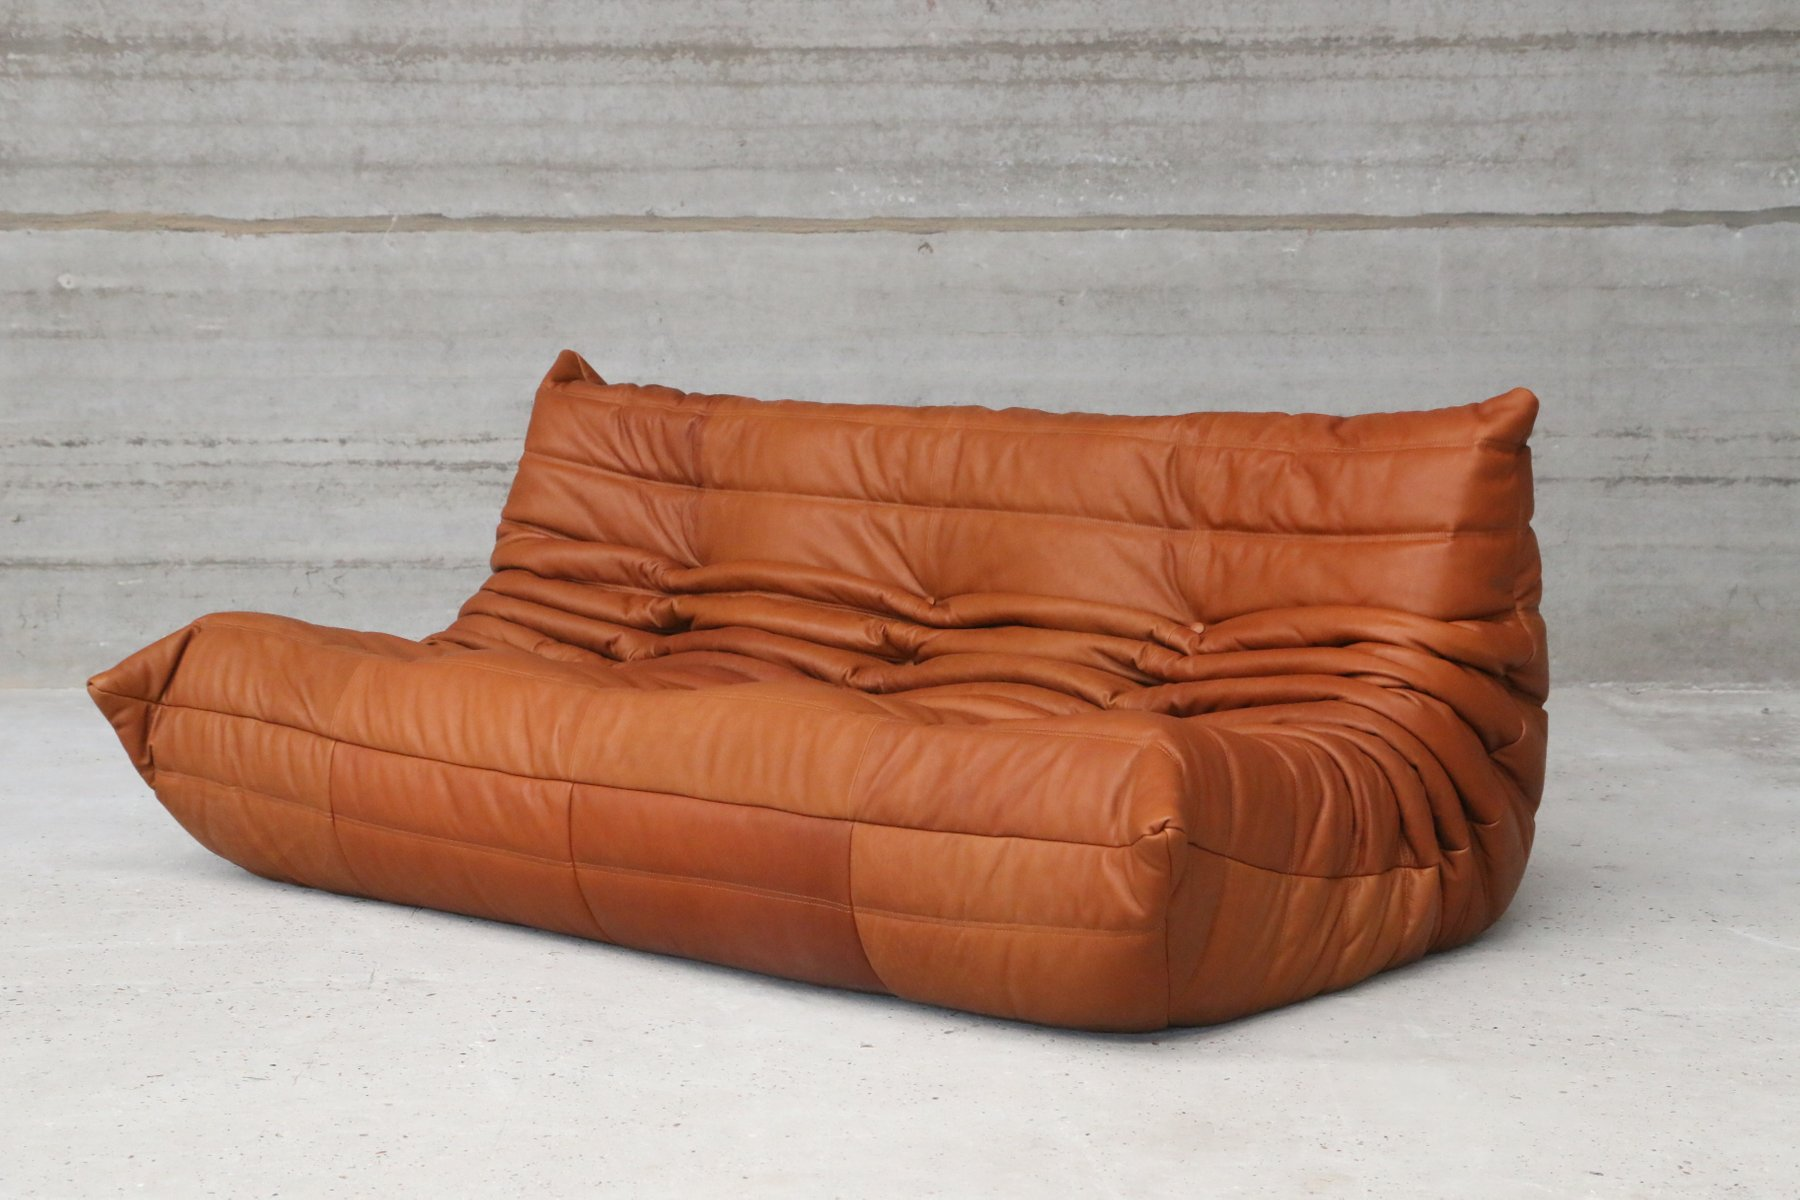 togo sofa replica uk mid century sofas vintage cognac leather three seater by michel ducaroy for ligne roset